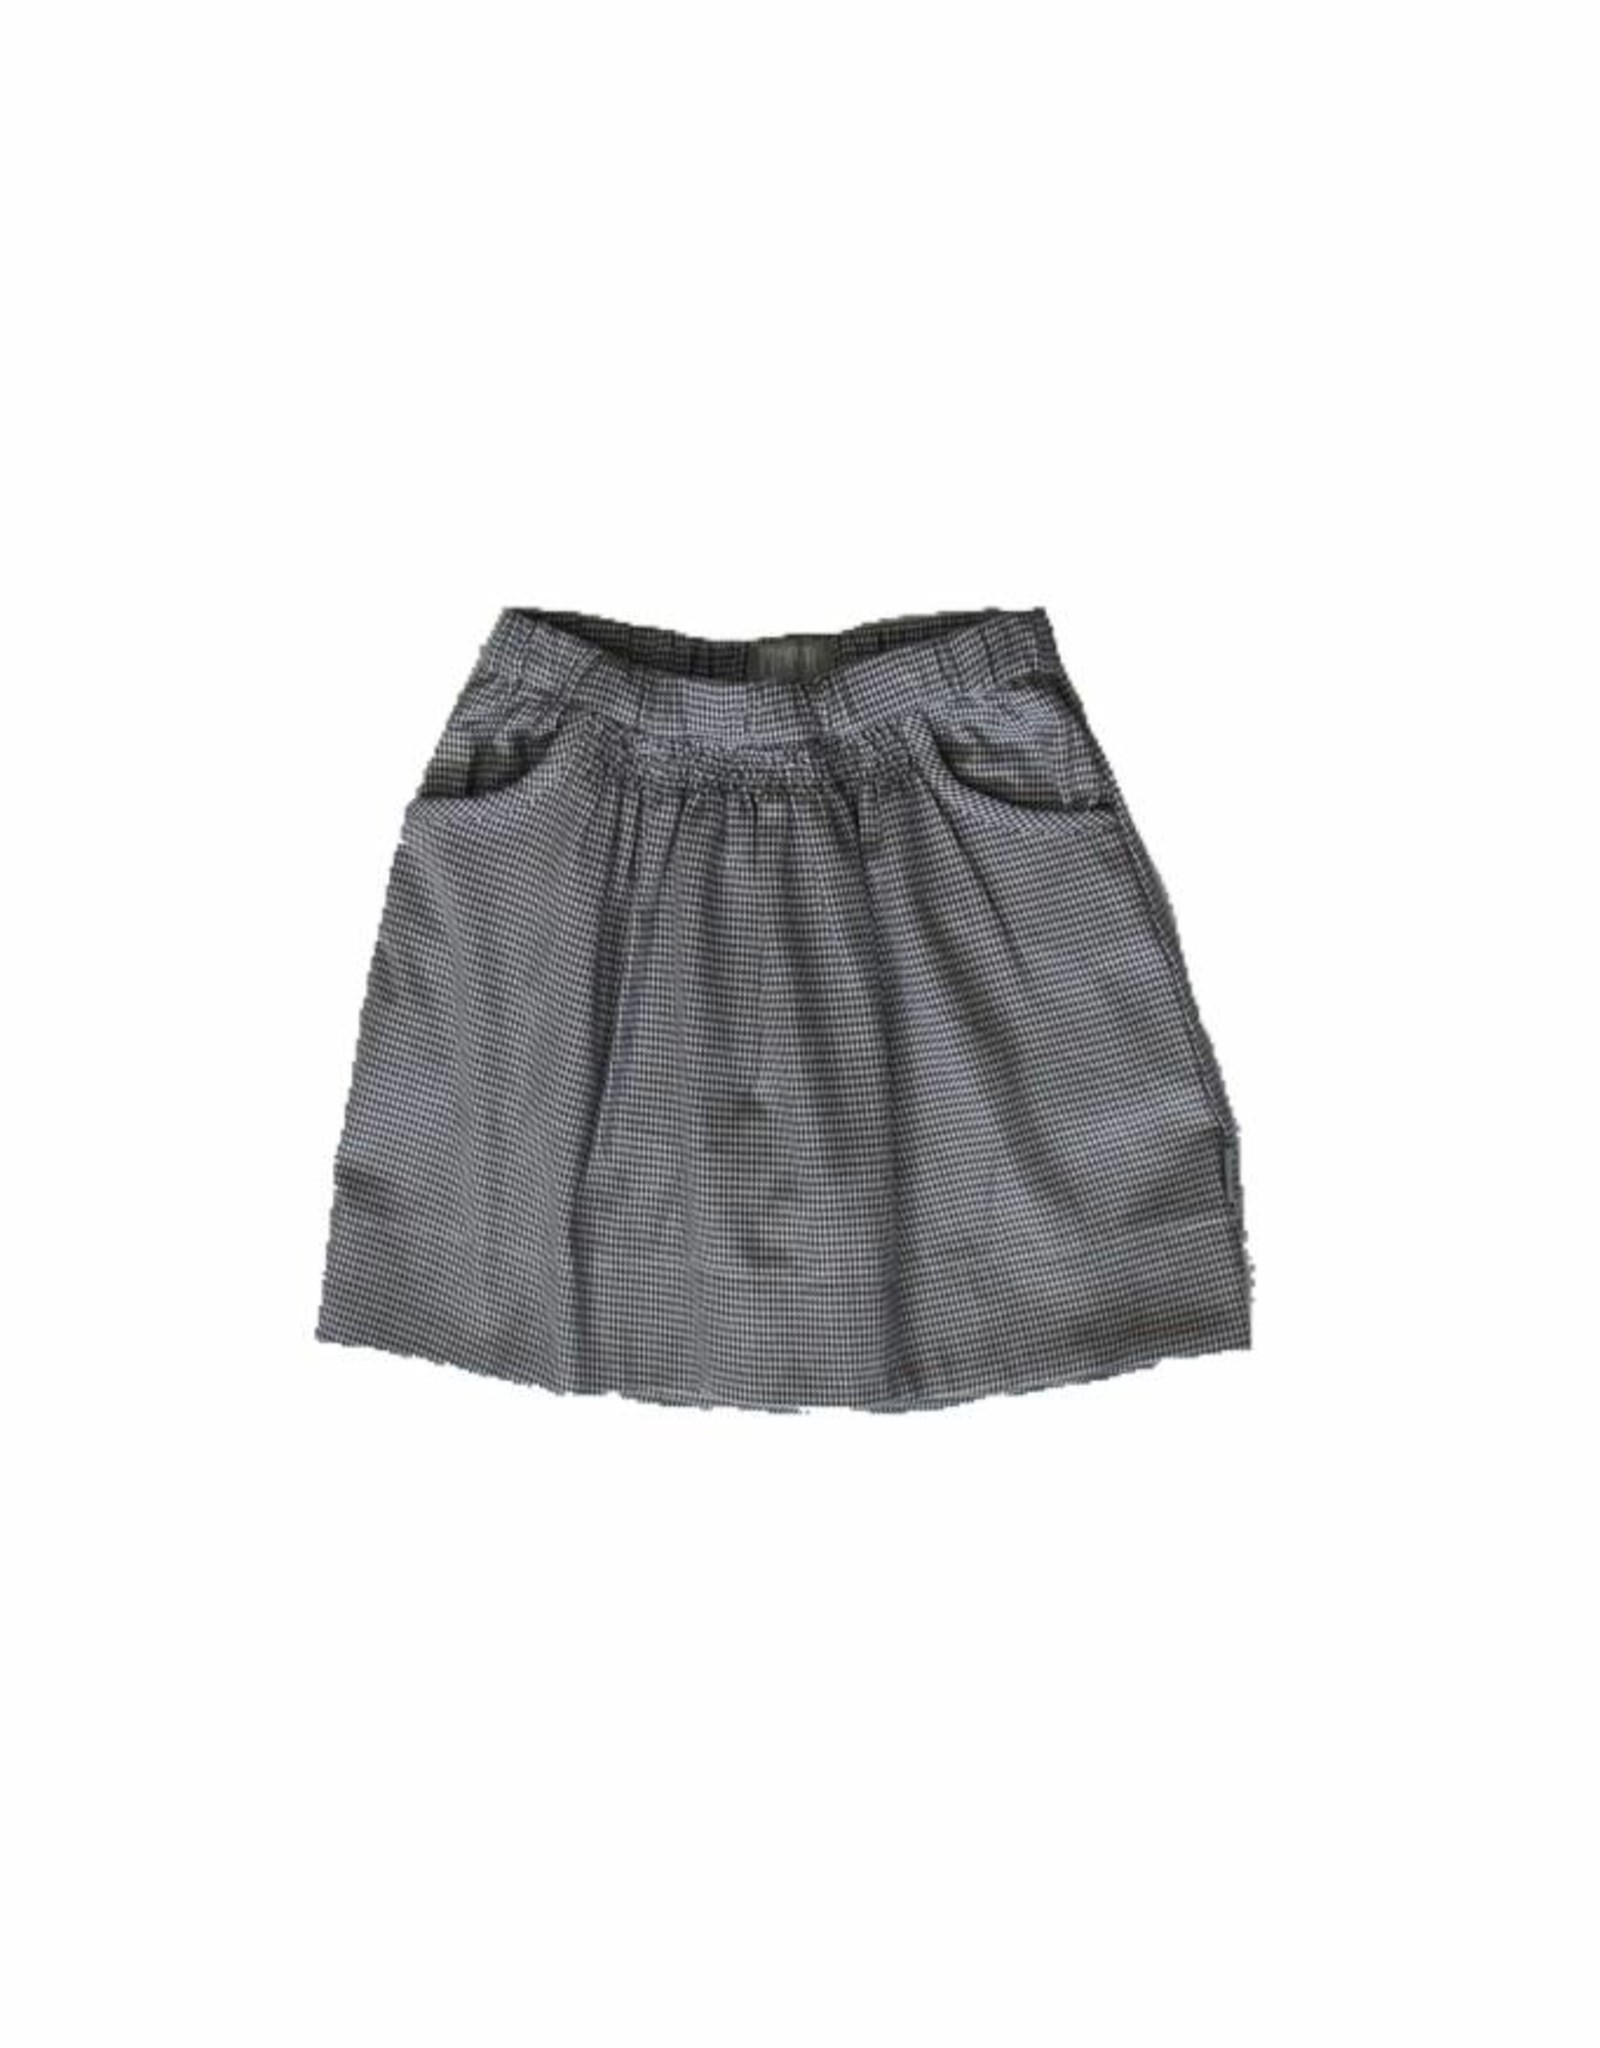 Proper Uniforms SKORT- Pockets, Toddler